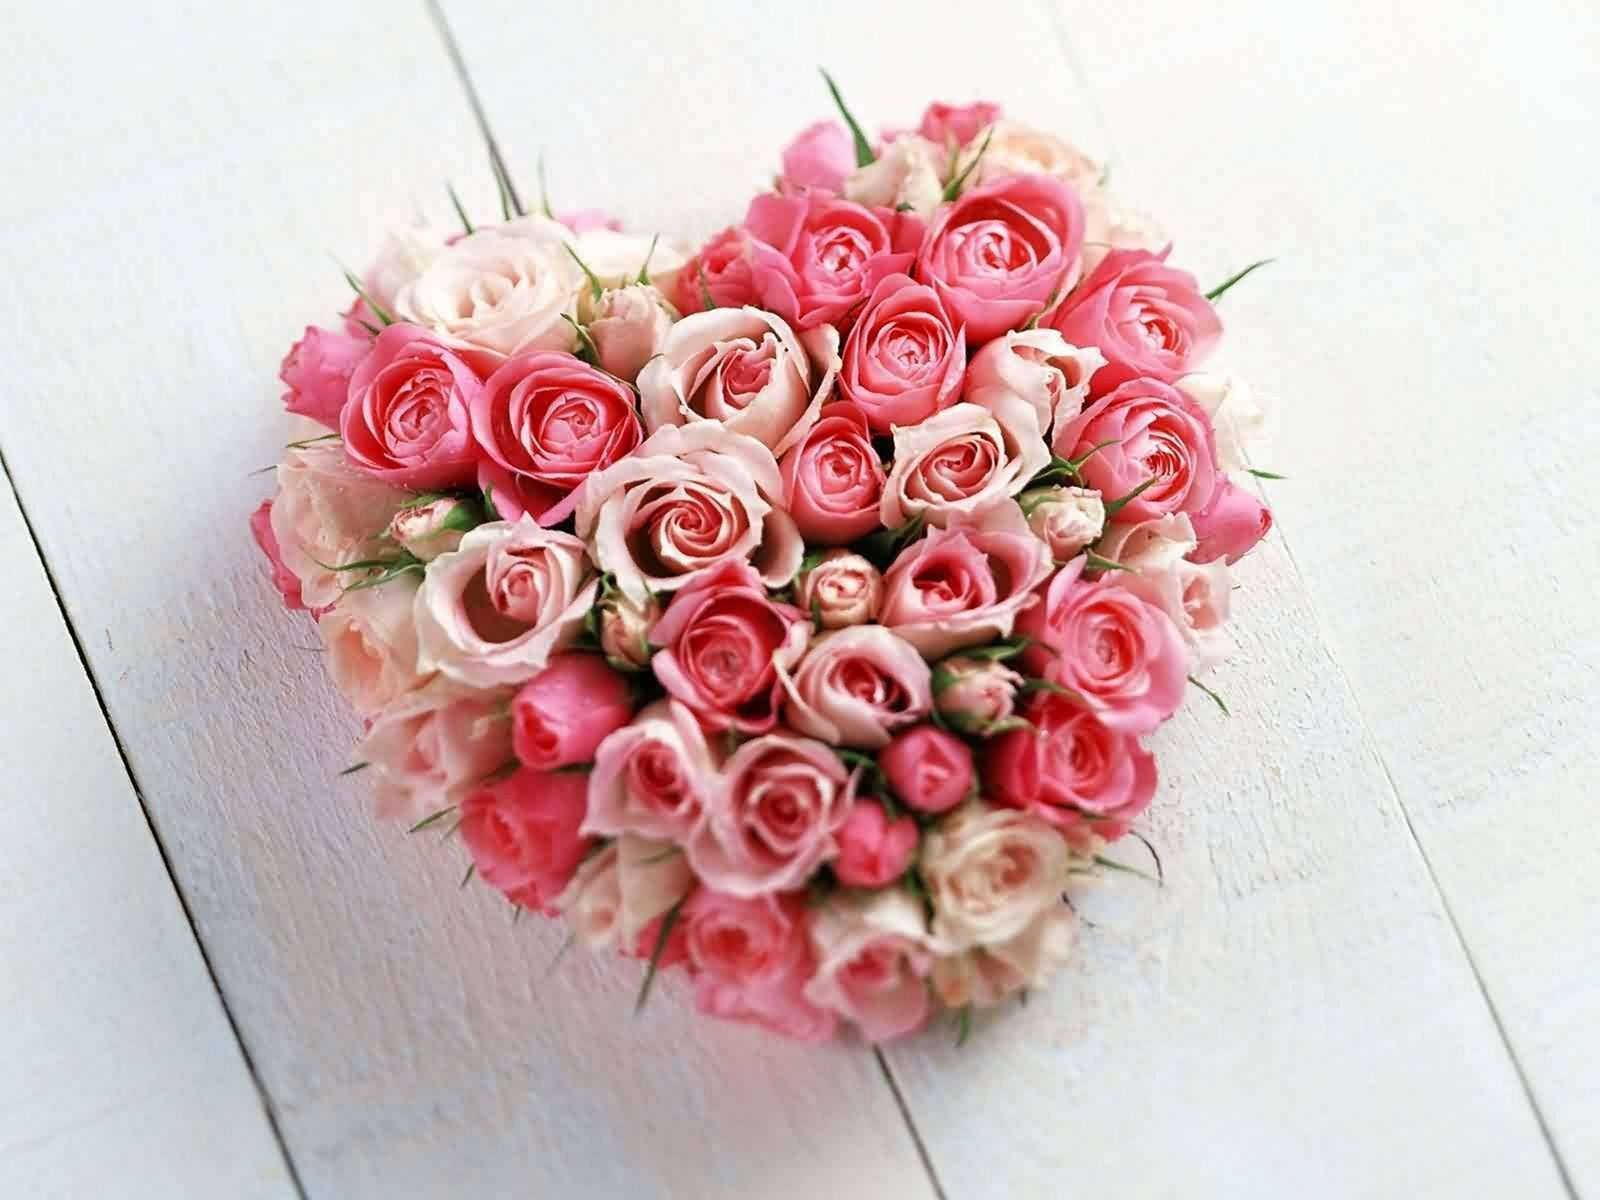 25 Beautiful Valentines Day Flowers Arrangements For Your Beloved